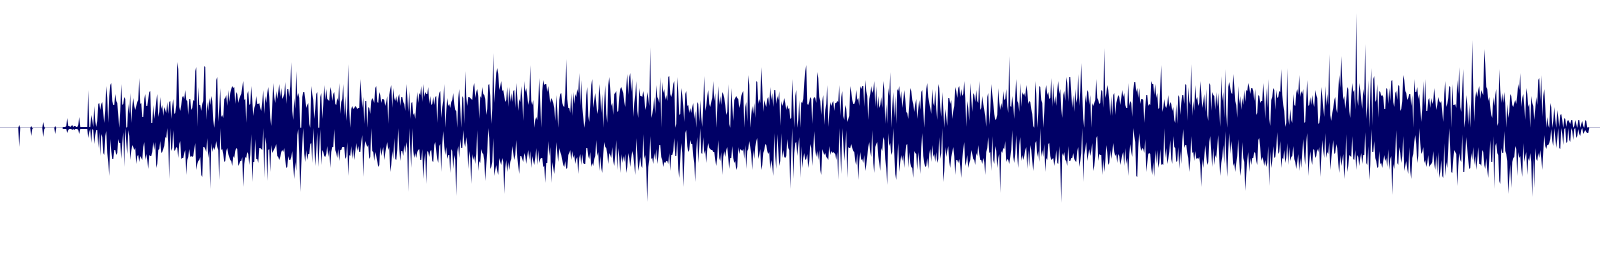 waveform of track #93610